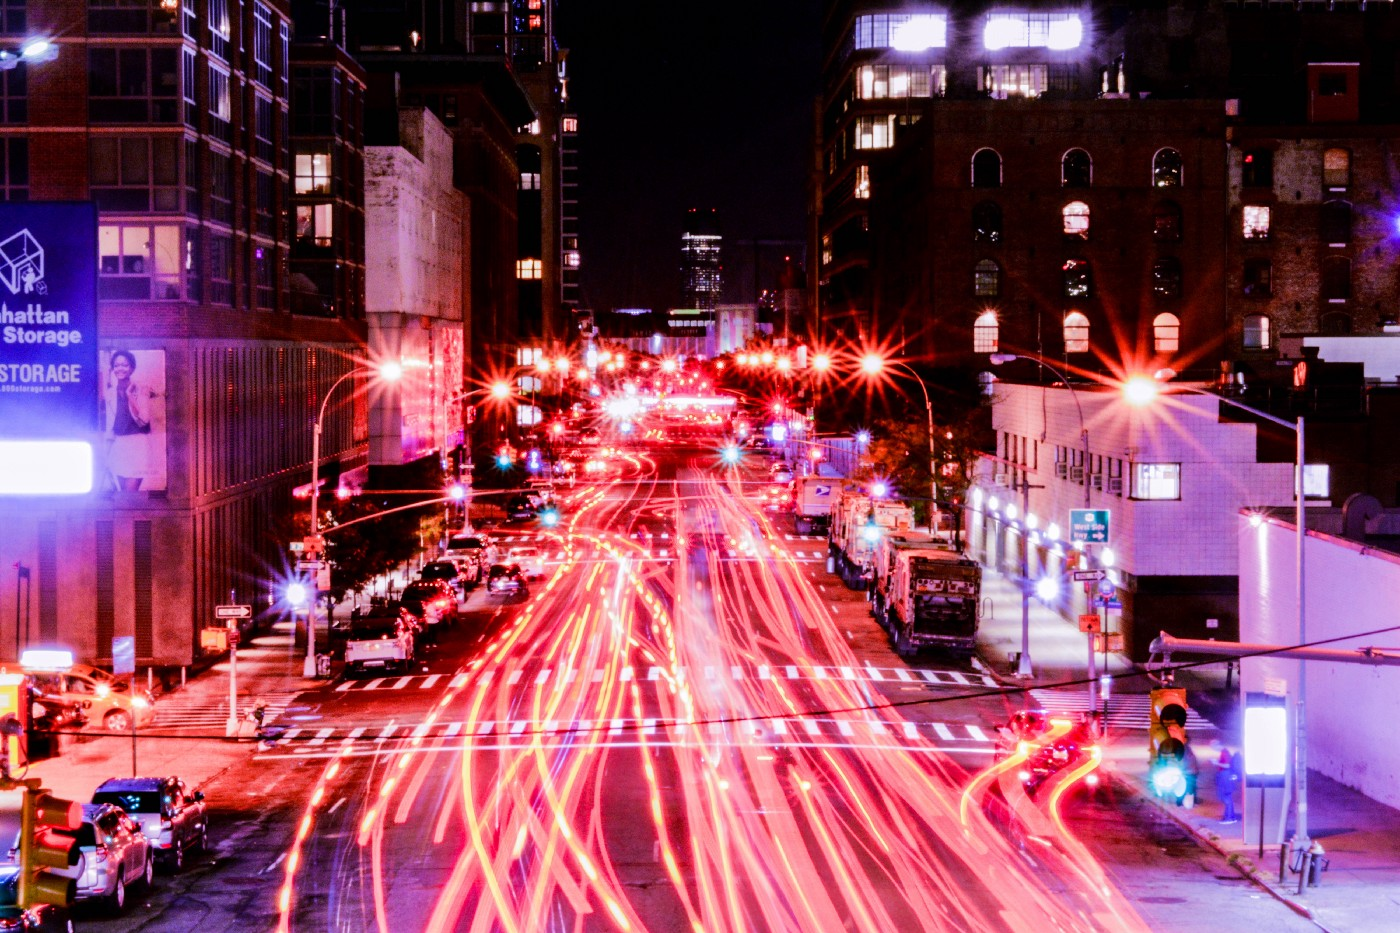 Time lapse of city streets at night